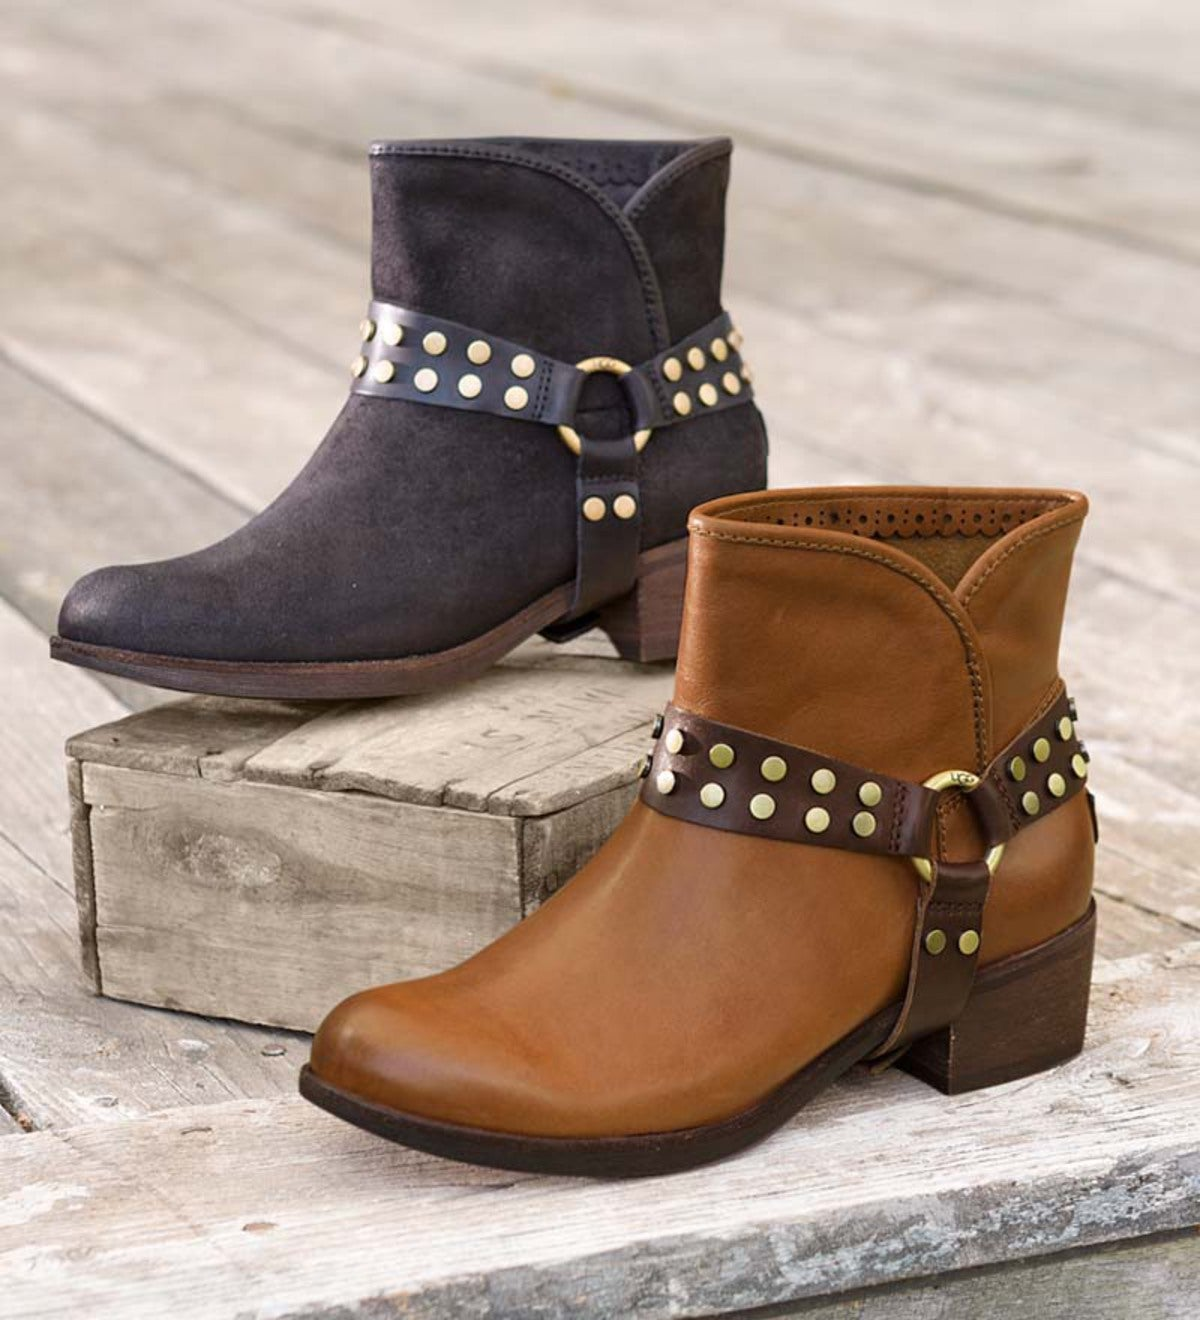 8095d77afd9 UGG Australia Darling Harness Women's Ankle Boot | PlowHearth